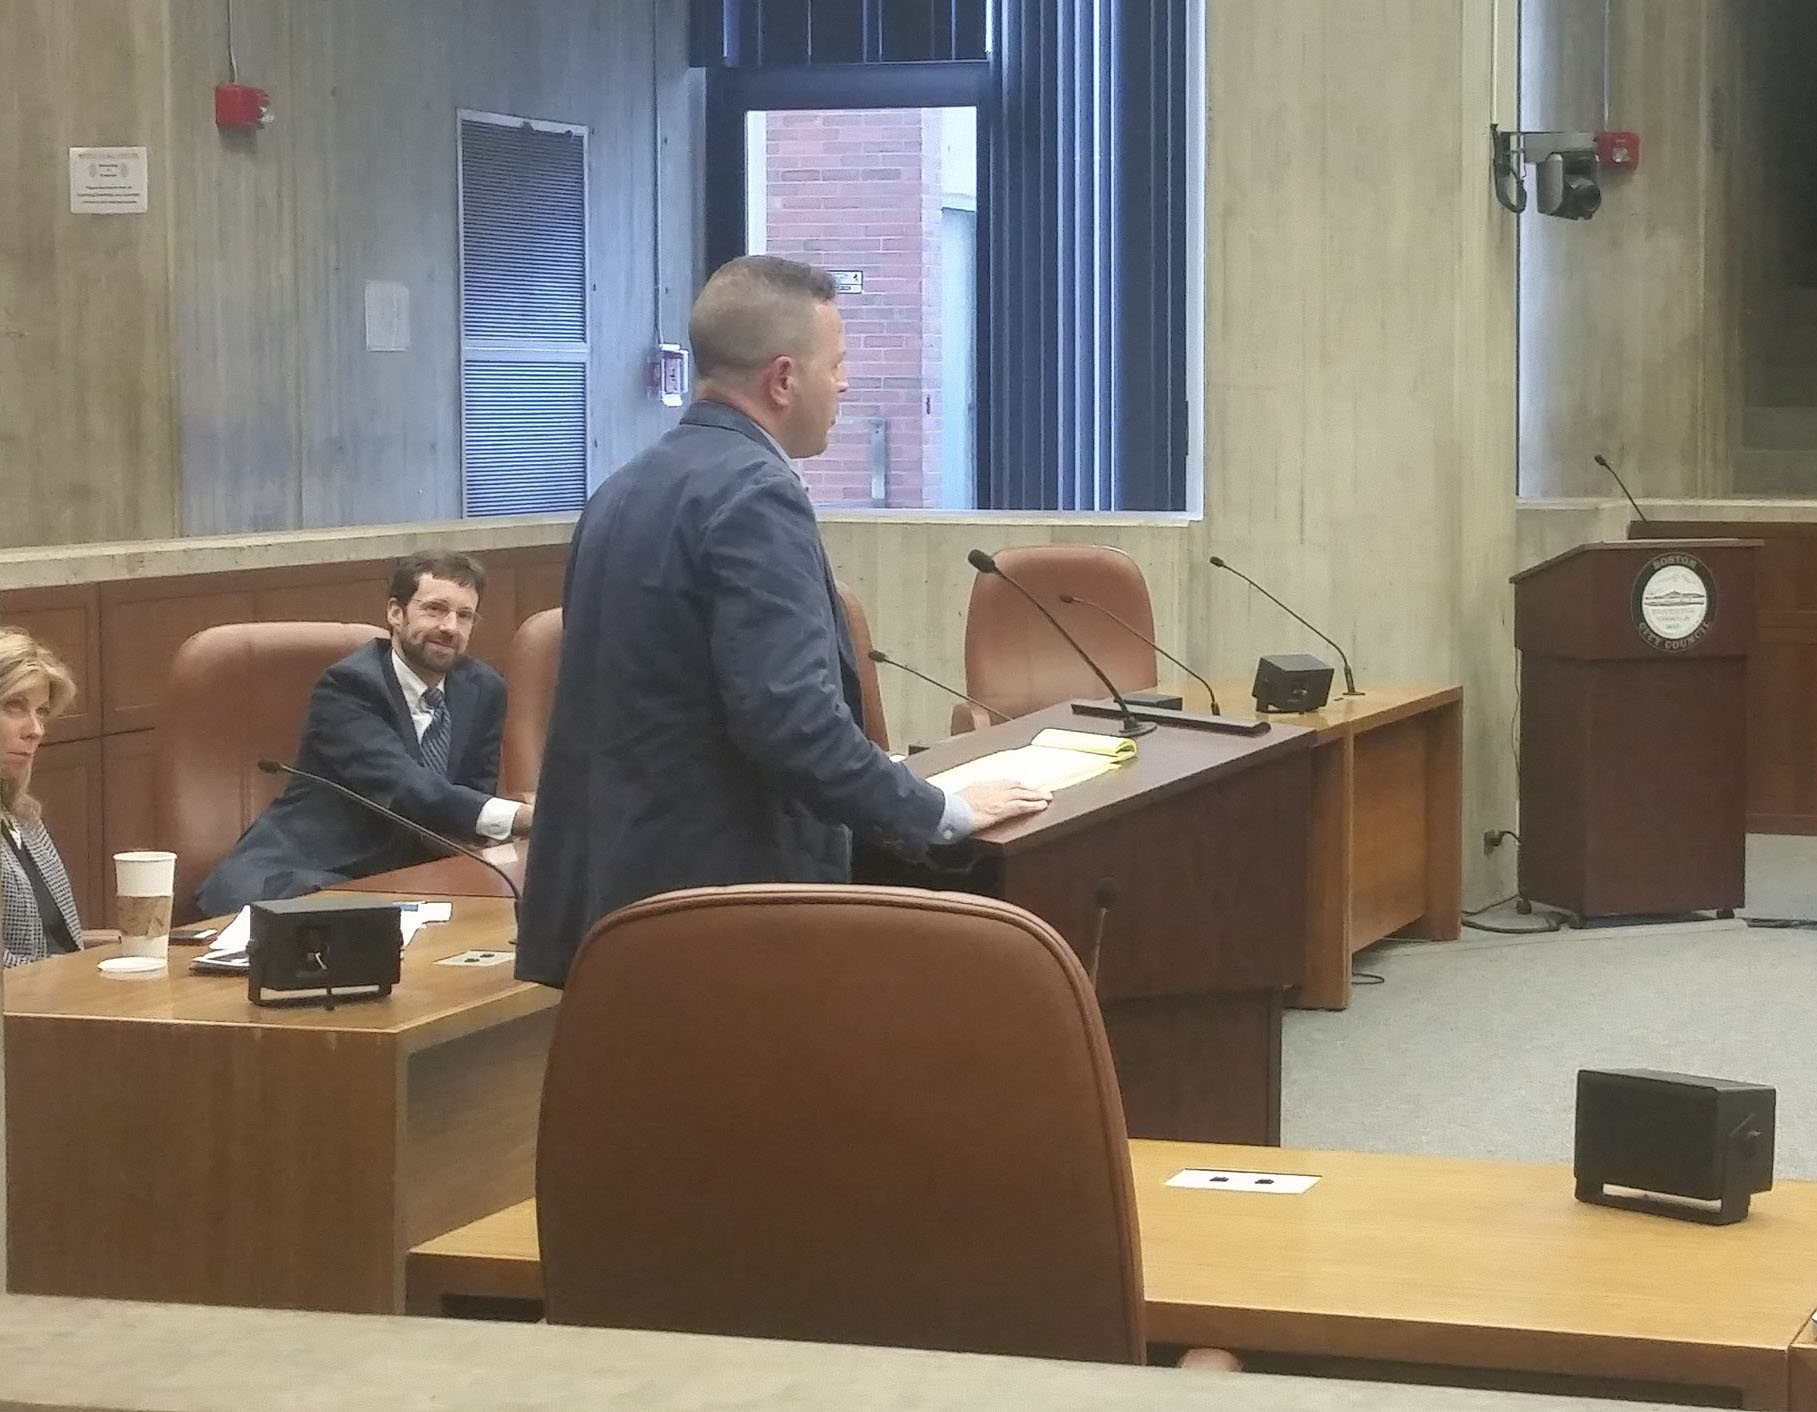 Matt-Lawlor-Testifying-at-City-Council-Hearing.jpg